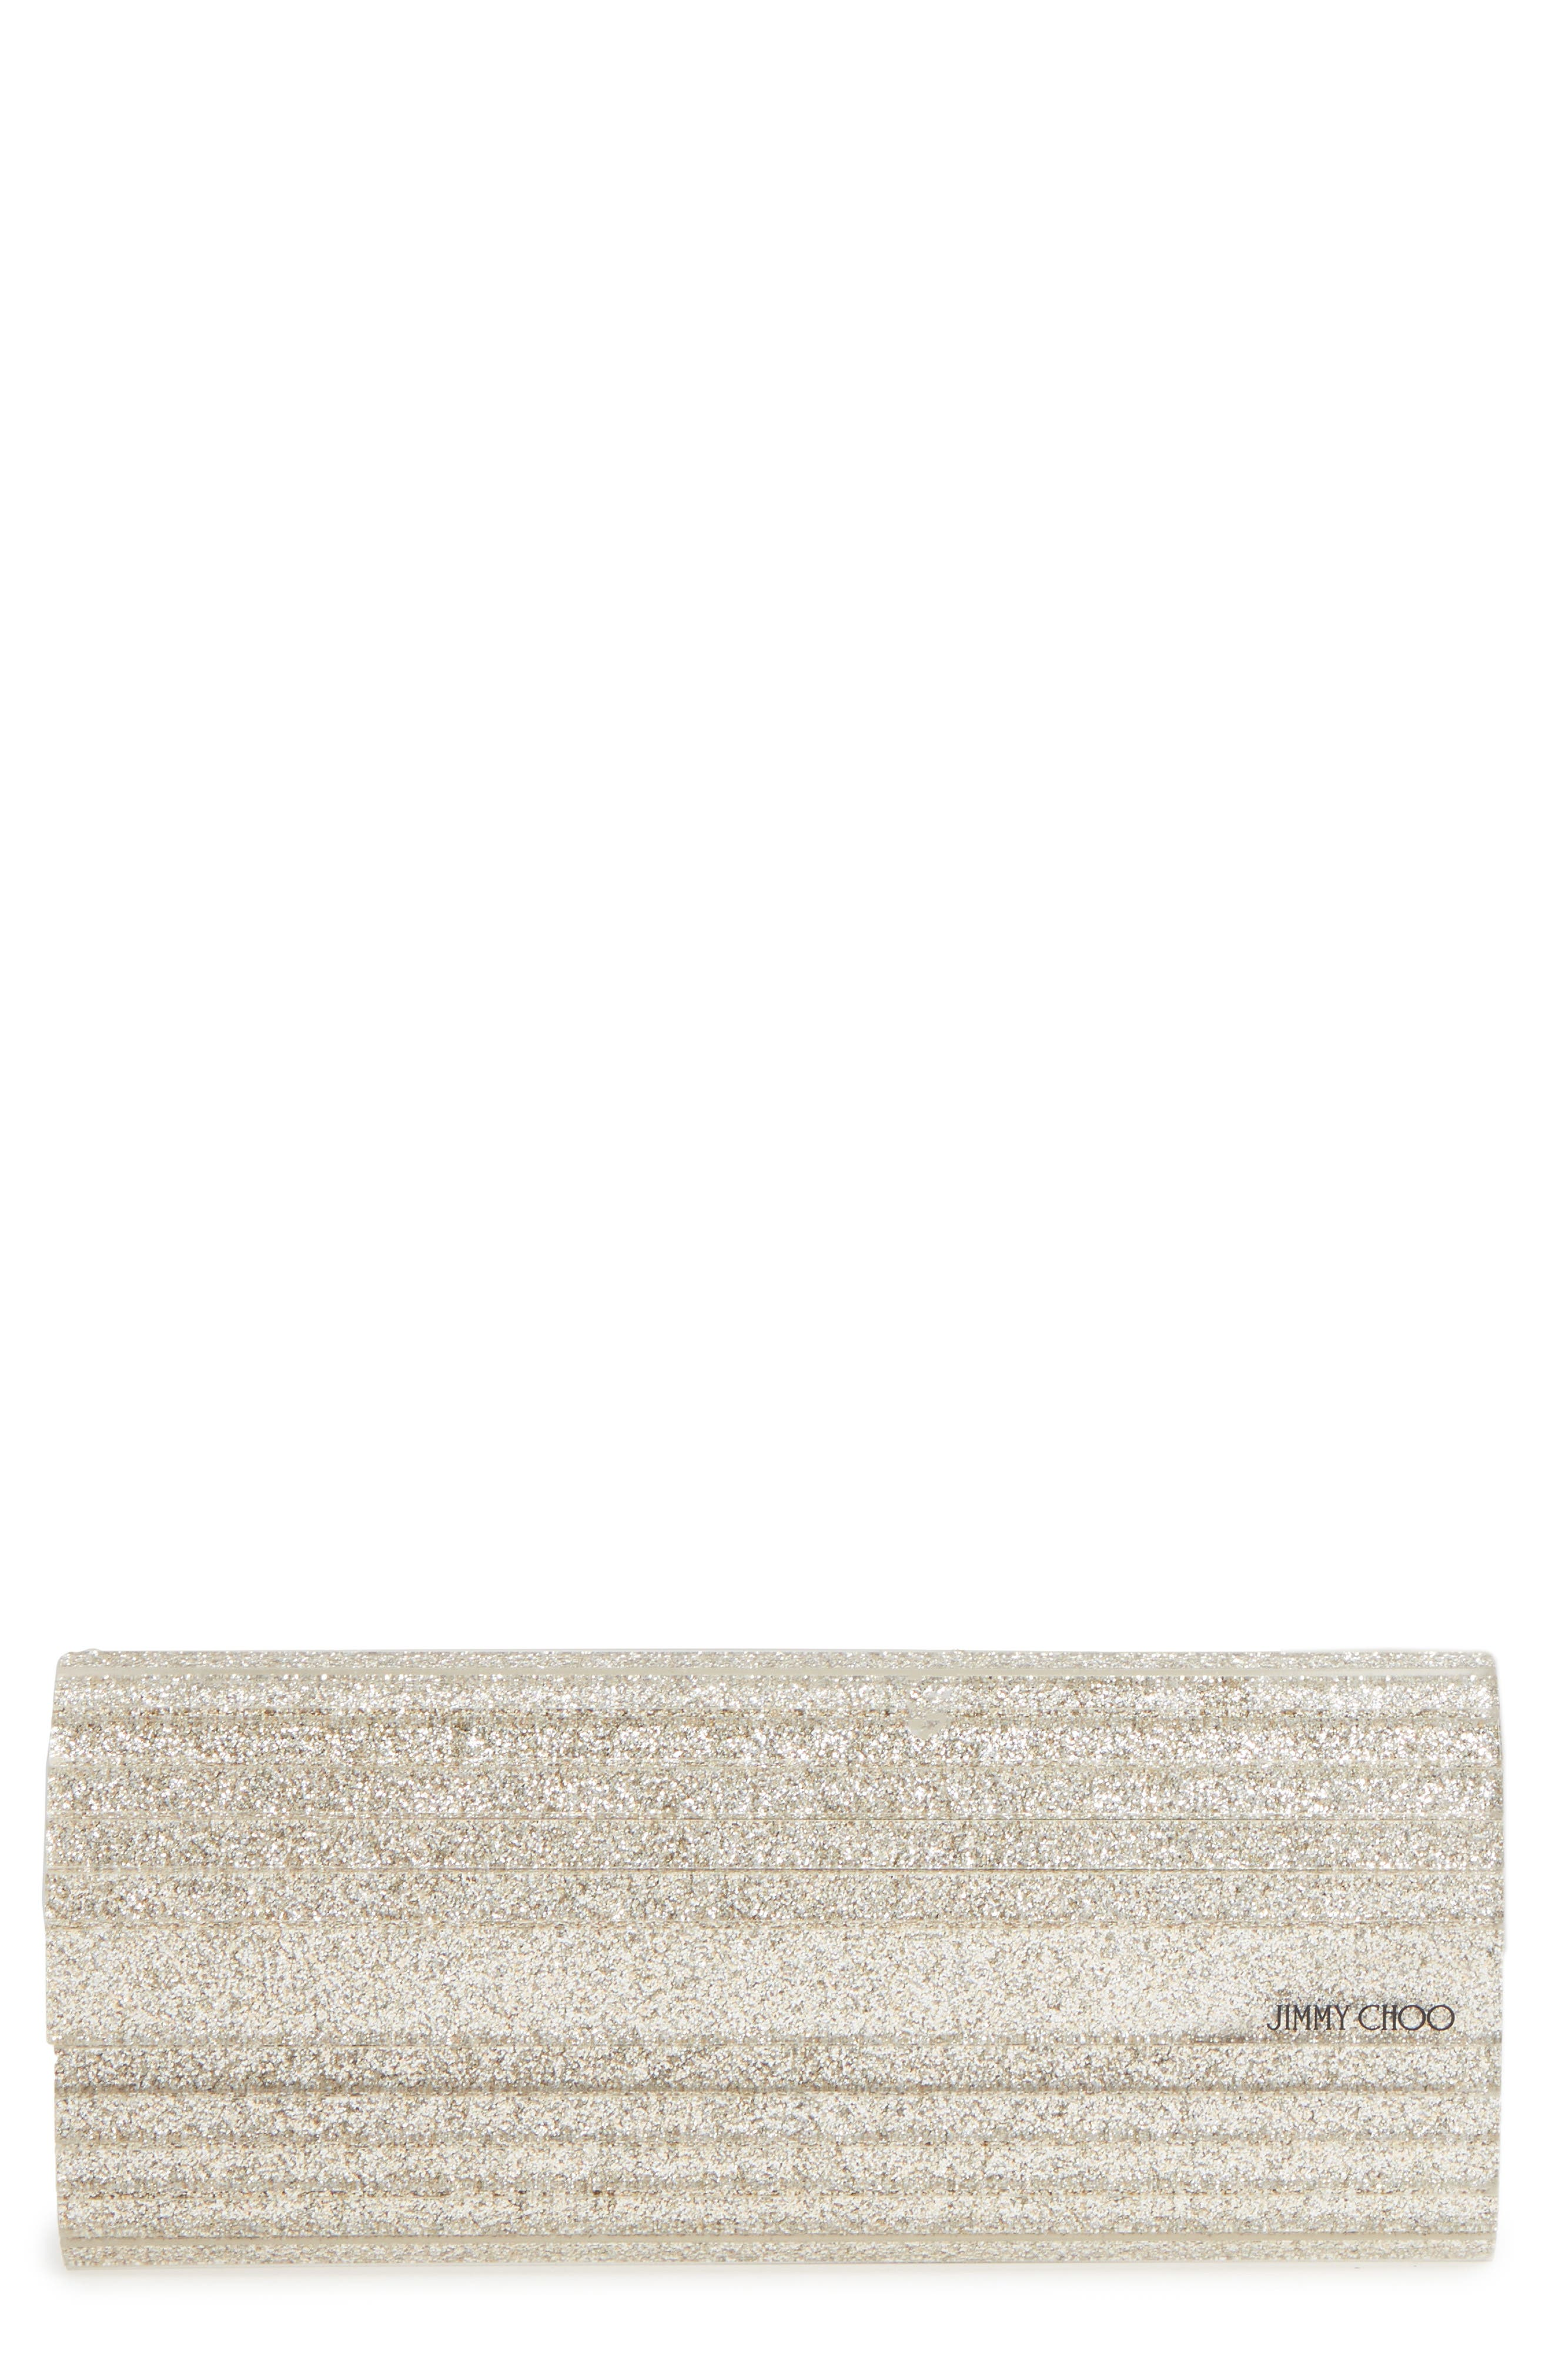 JIMMY CHOO 'Sweetie' Clutch, Main, color, CHAMPAGNE GLITTER